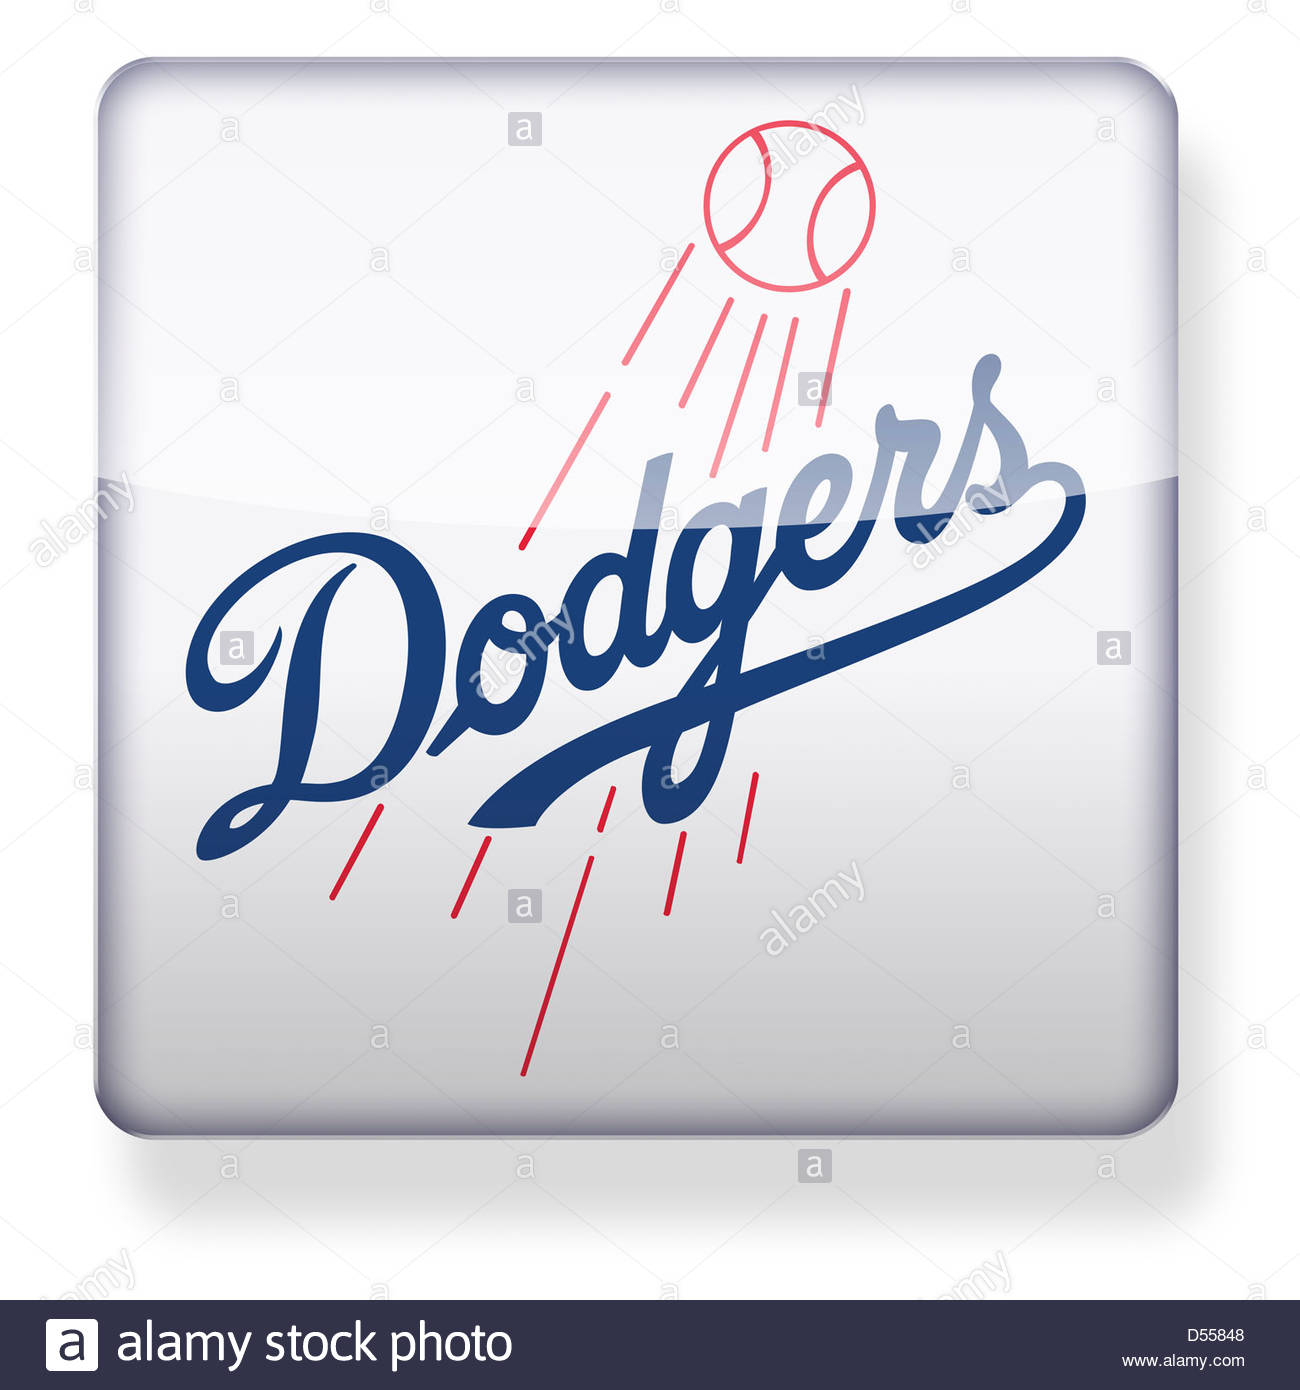 Los angeles logo icon app flag button of california stock photo los angeles dodgers logo as an app icon clipping path included stock photo buycottarizona Image collections